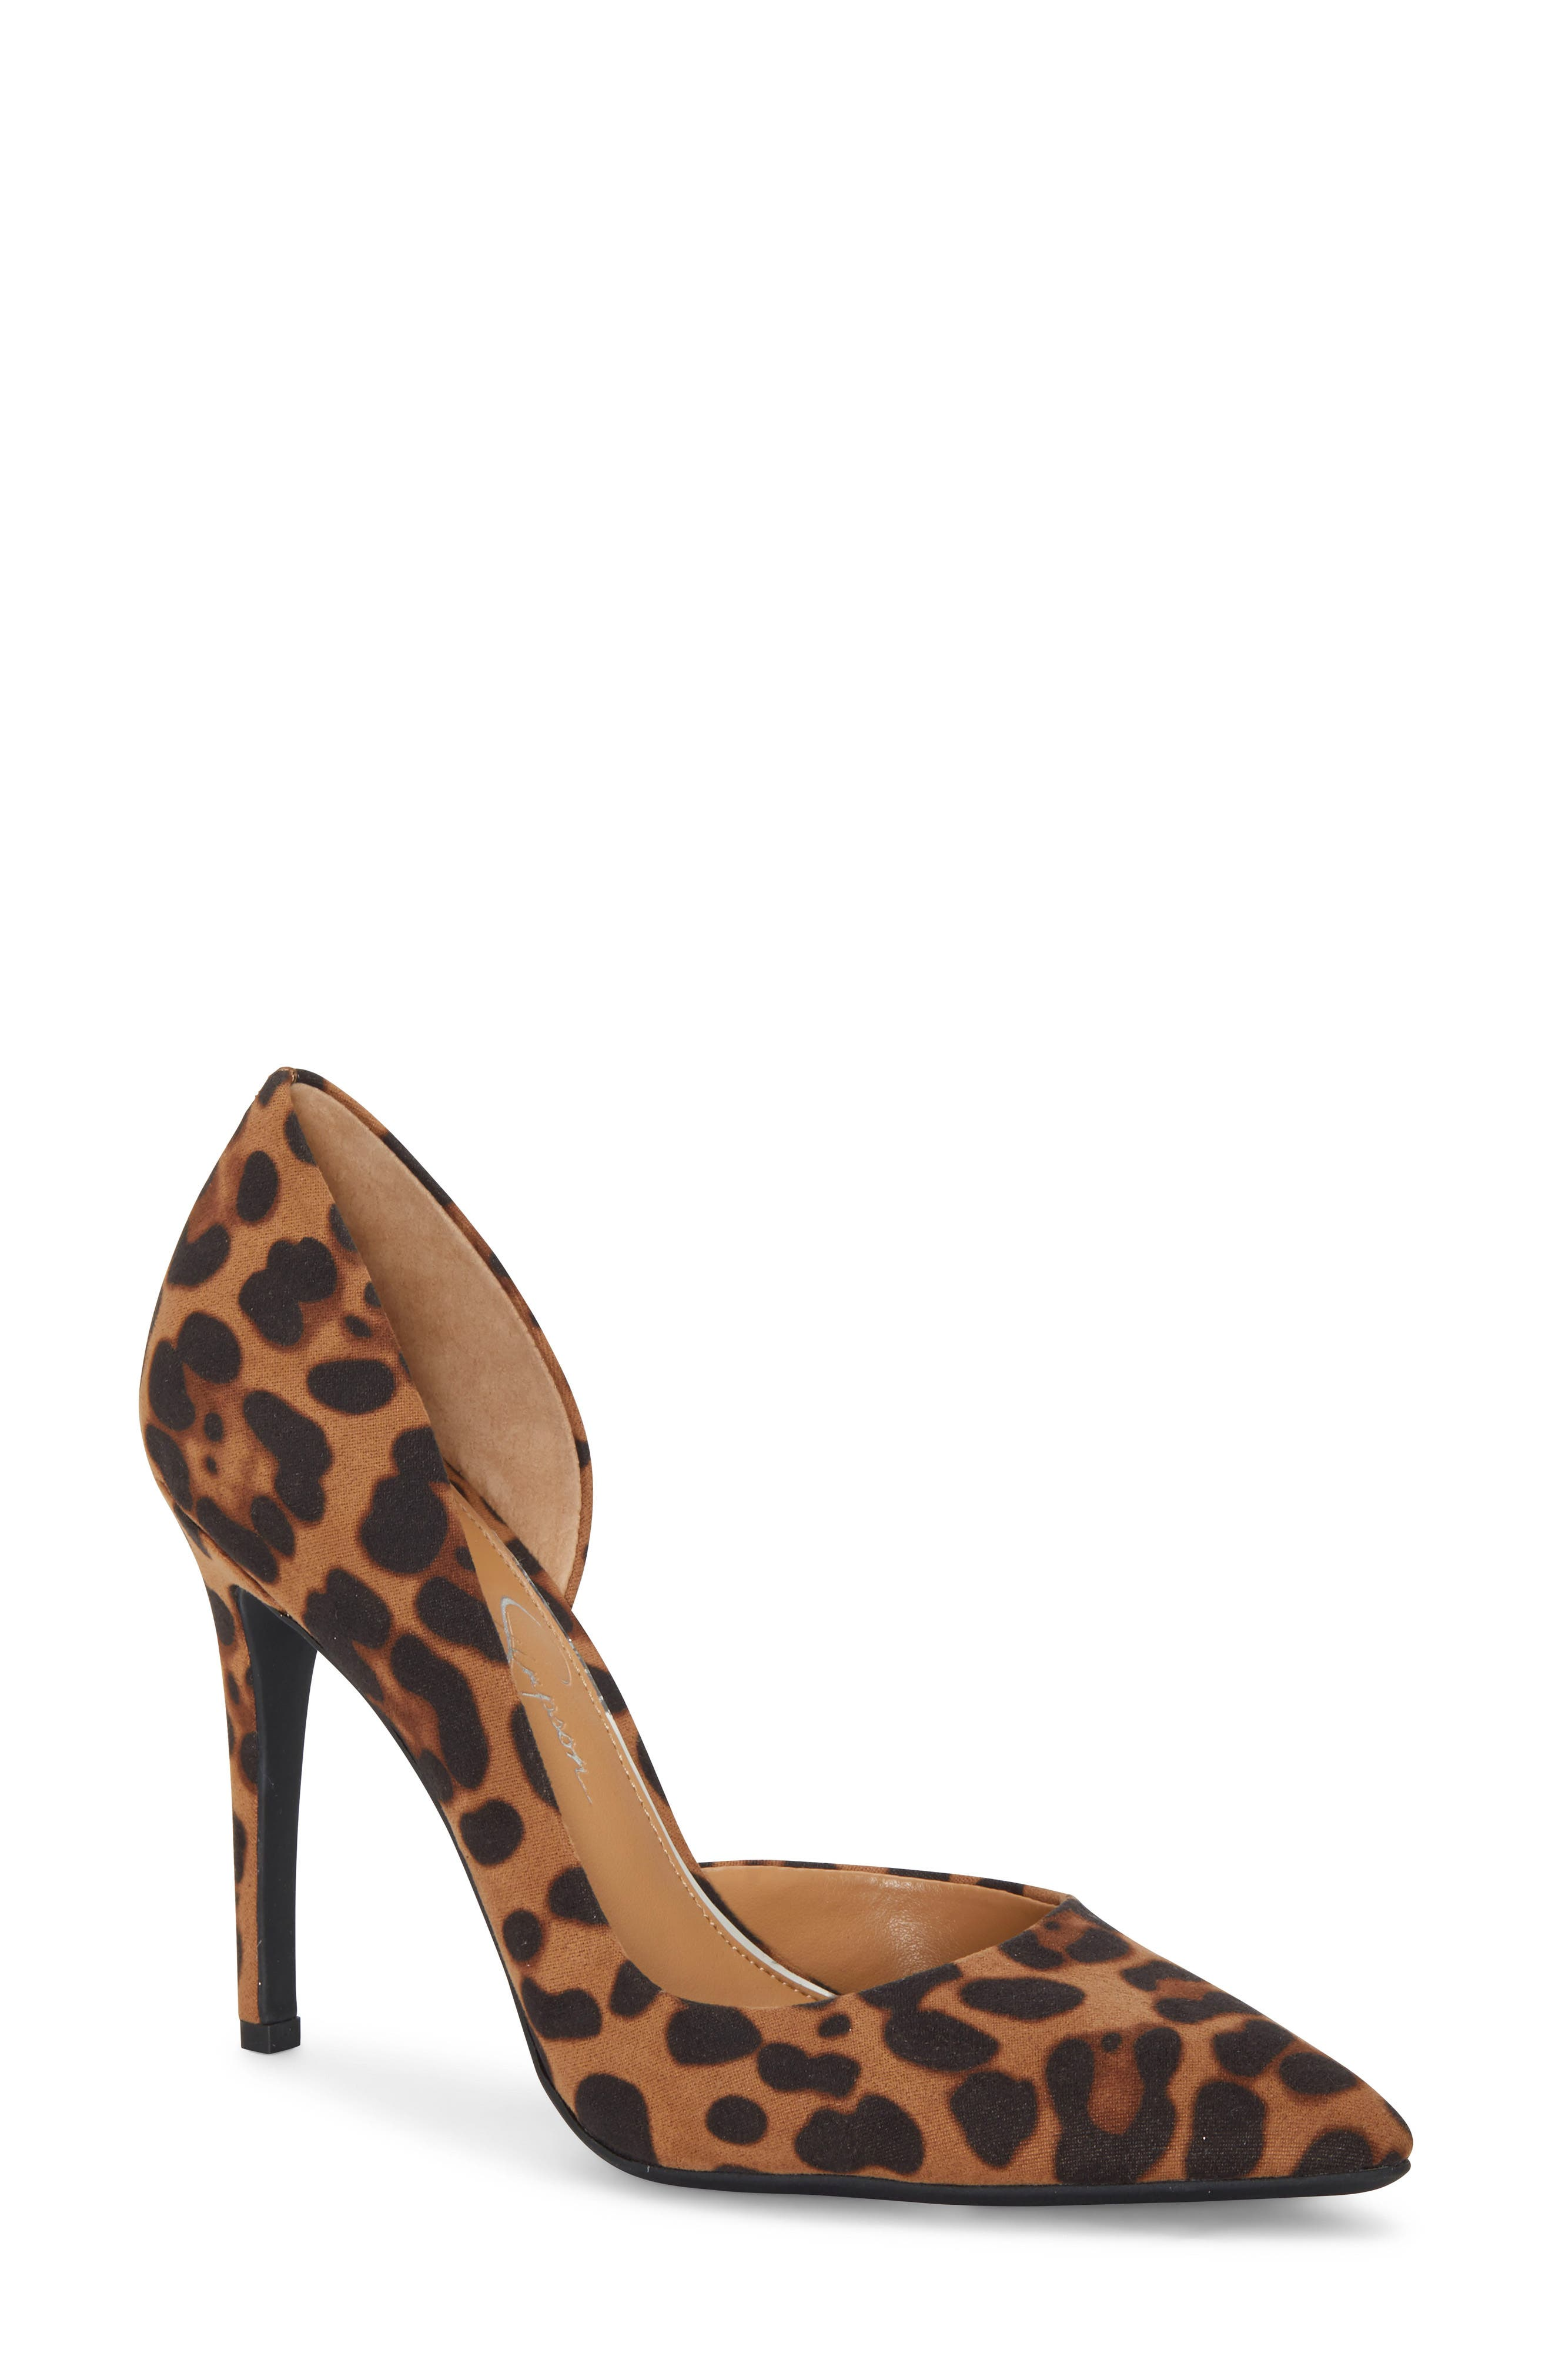 A curvy open side and a smartly pointed toe bring gorgeous balance to a wardrobe-staple pump lofted high on a penthouse stiletto. Style Name: Jessica Simpson Pheona Pump (Women). Style Number: 5549579 6. Available in stores.